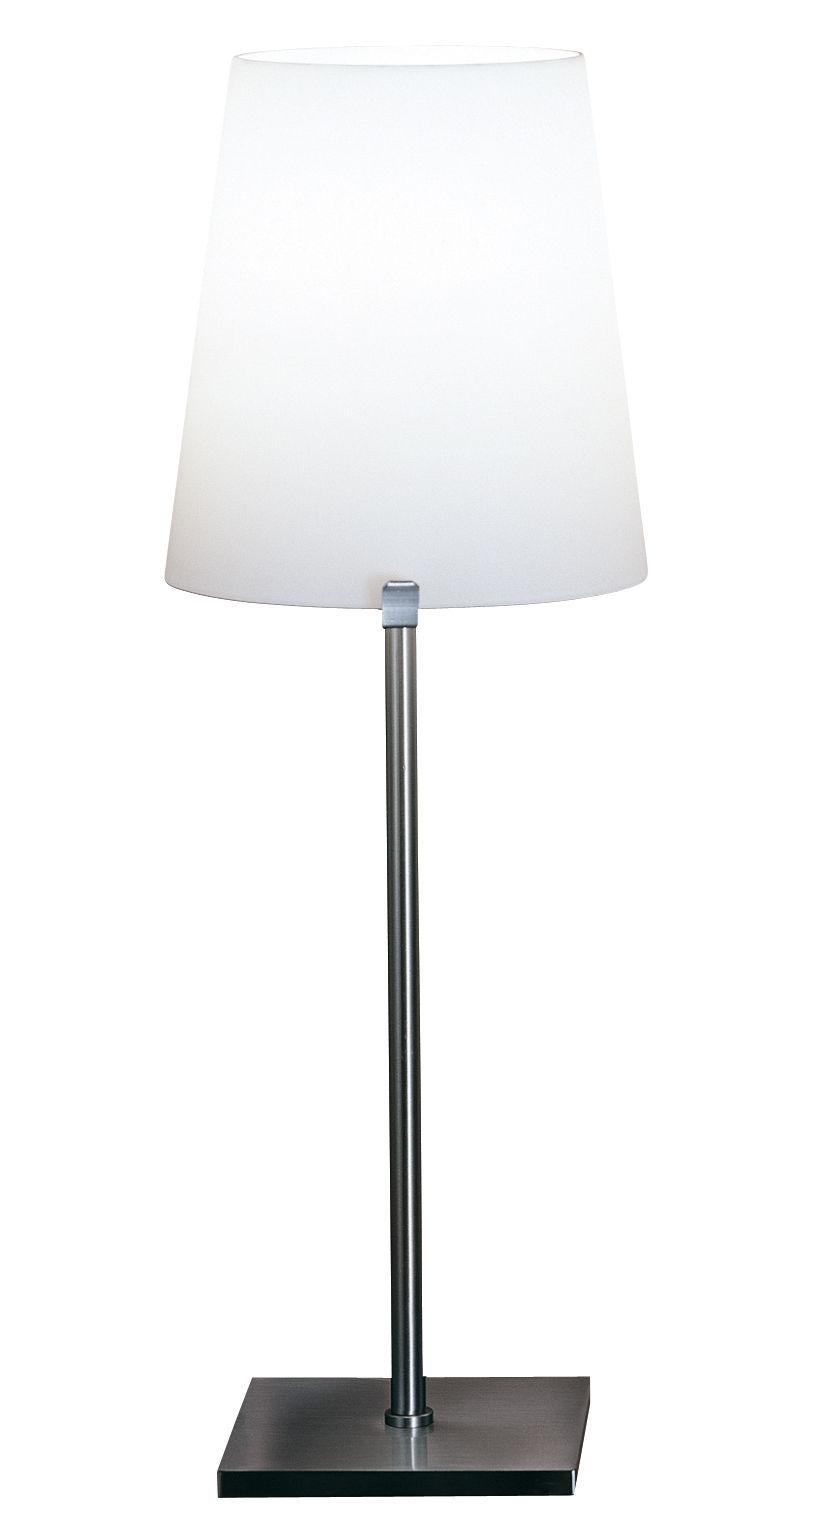 Lighting - Table Lamps - Chiara Table lamp by Fontana Arte - White - Blown glass, Brushed stainless steel